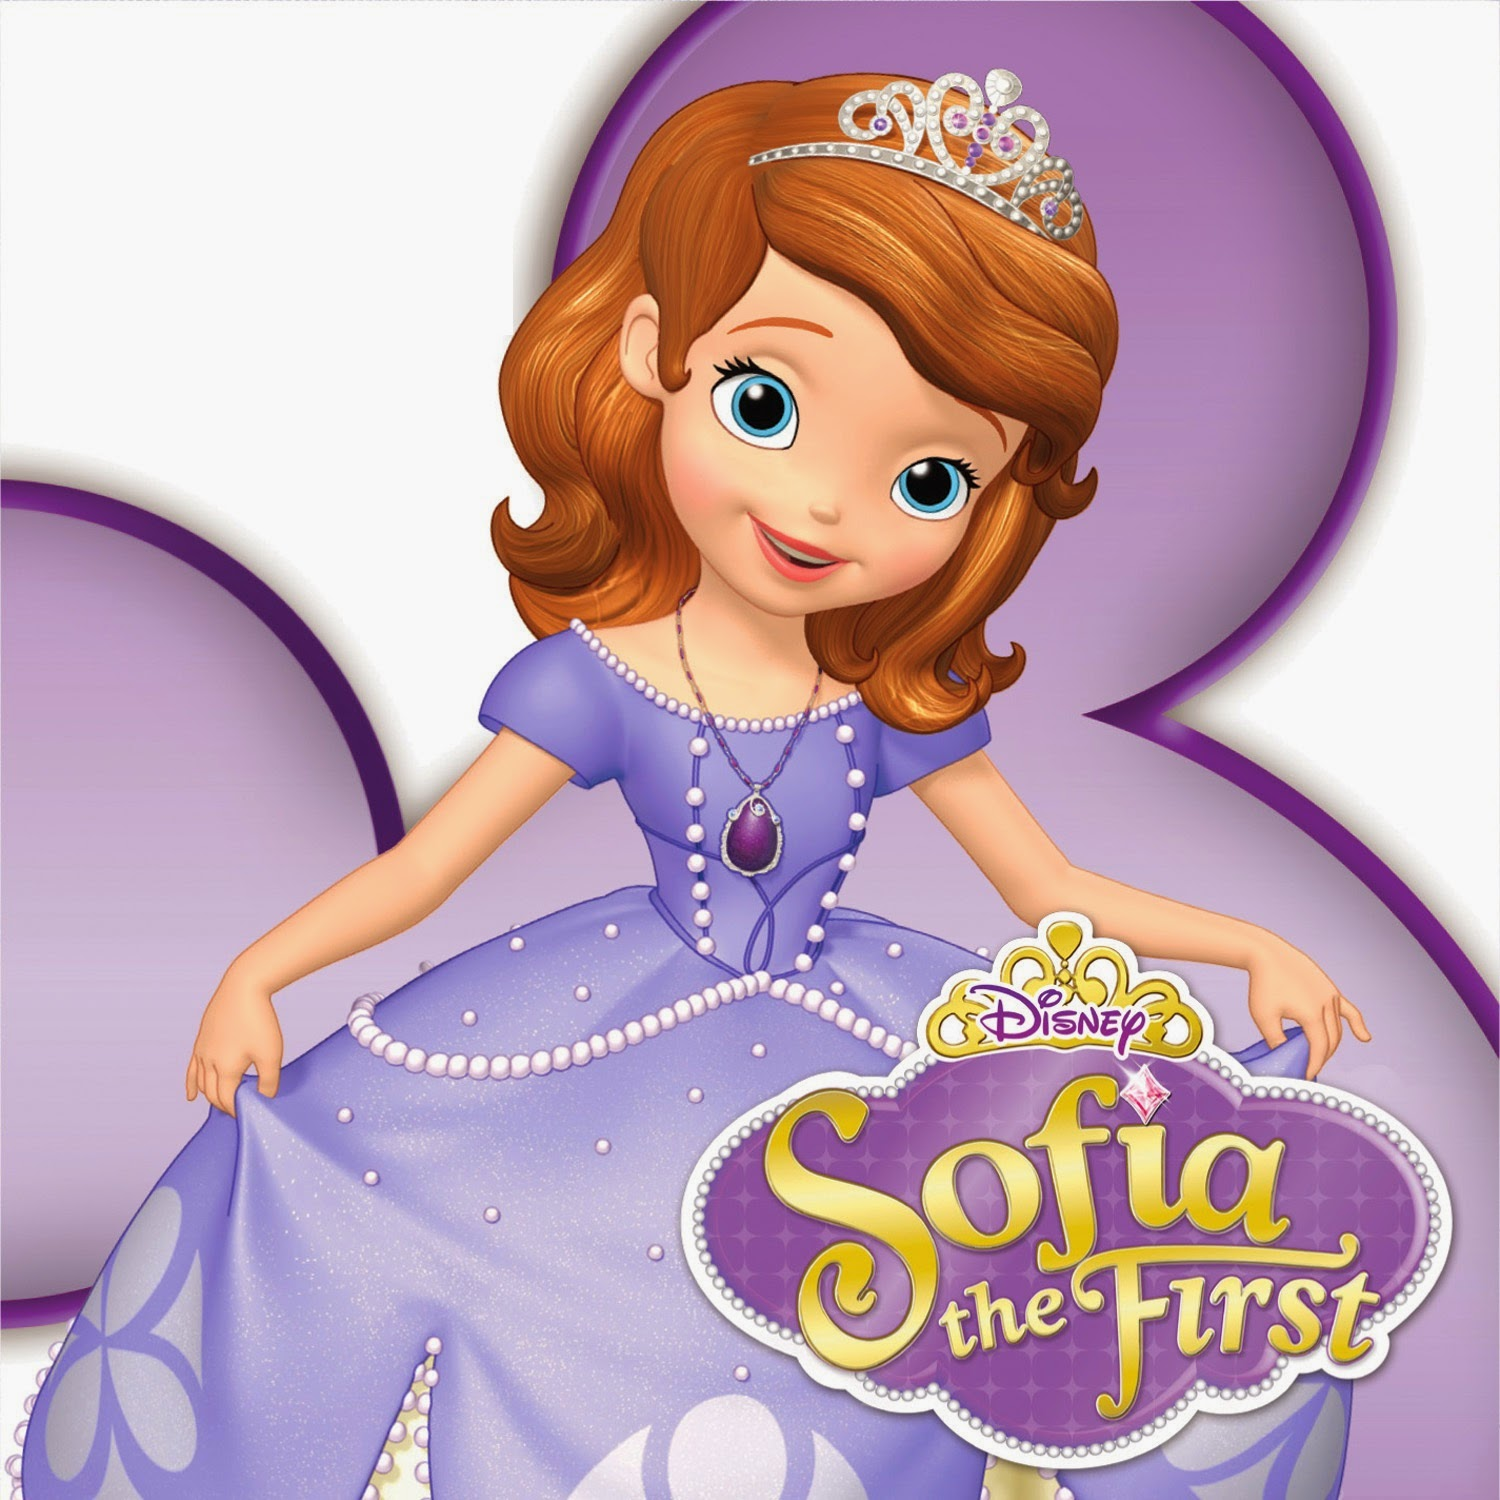 Sofia The First Free Printable Notebook